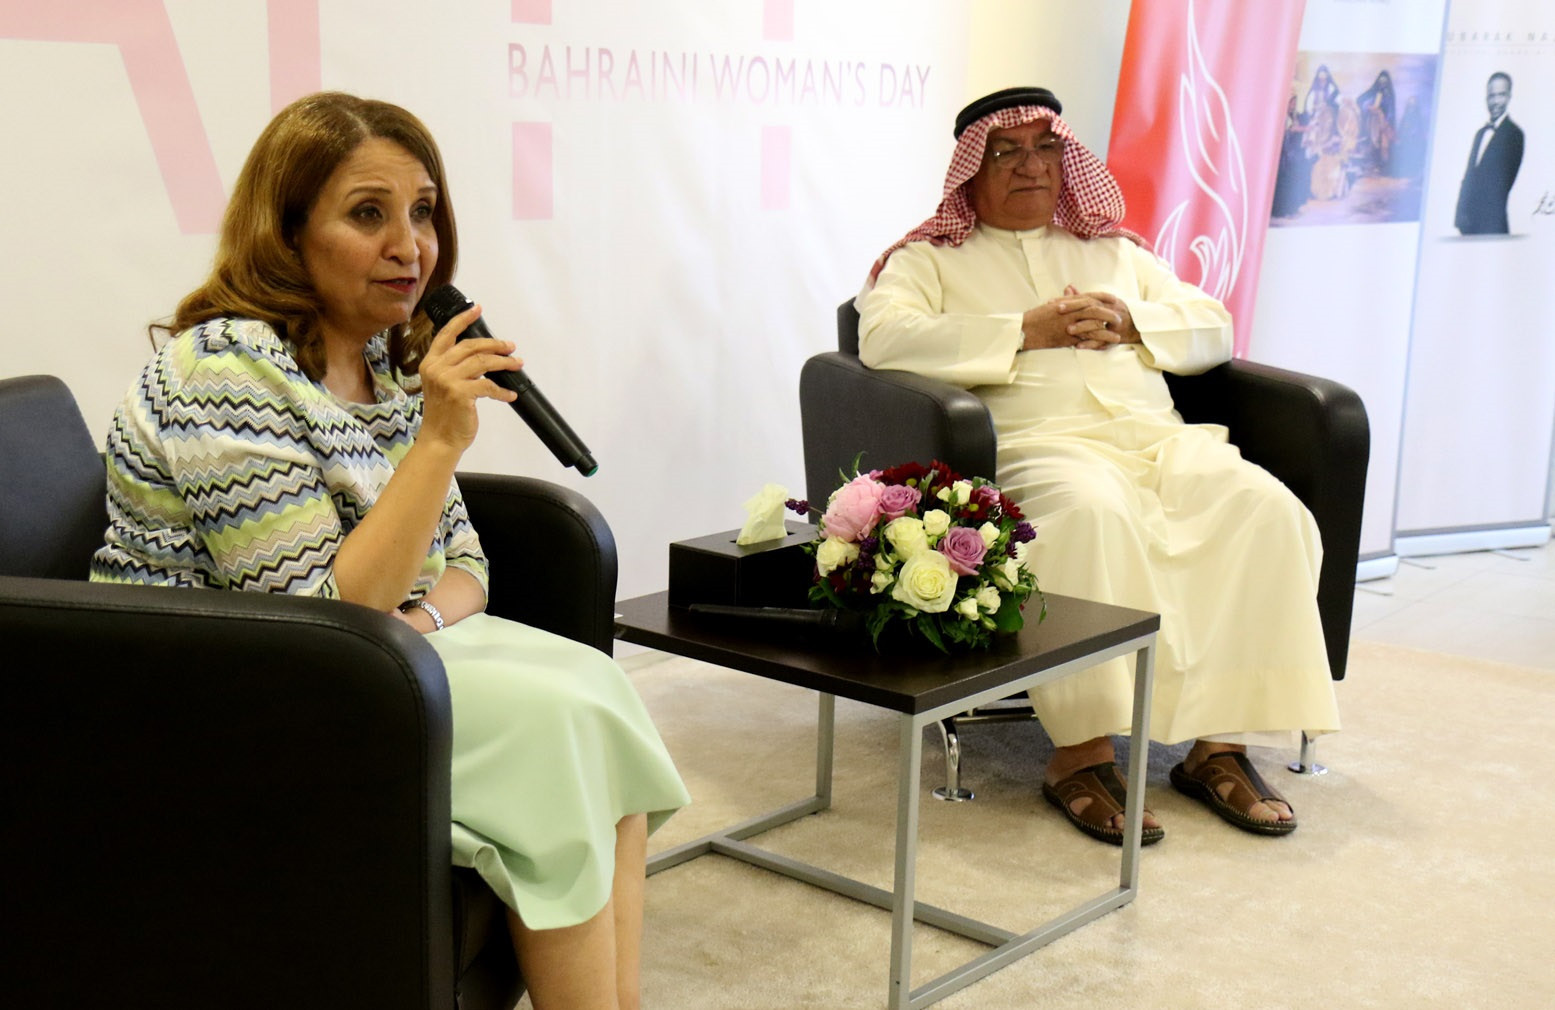 Bahrain Women's Sport Committee chair Shaikha Hayat bint Abdulaziz Al Khalifa, left, was the patron of the event ©BOC